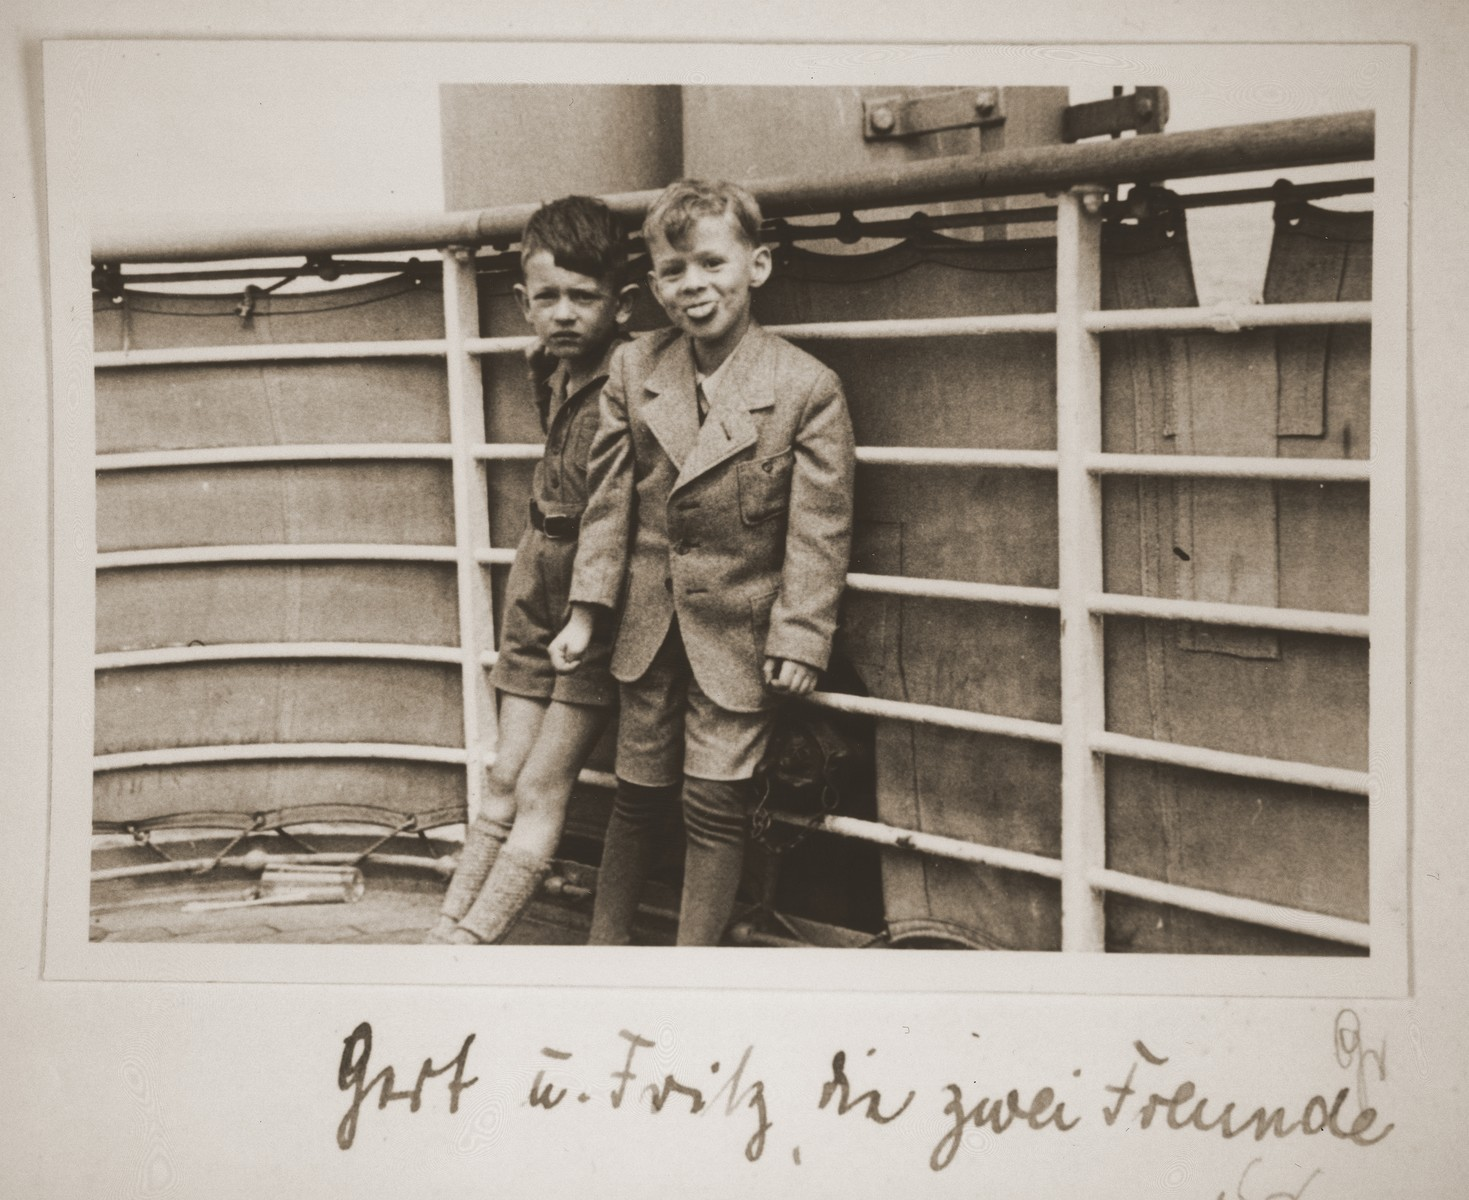 Fritz Vendig and his friend Gerd-Fritz Grunstein on board the MS St. Louis.